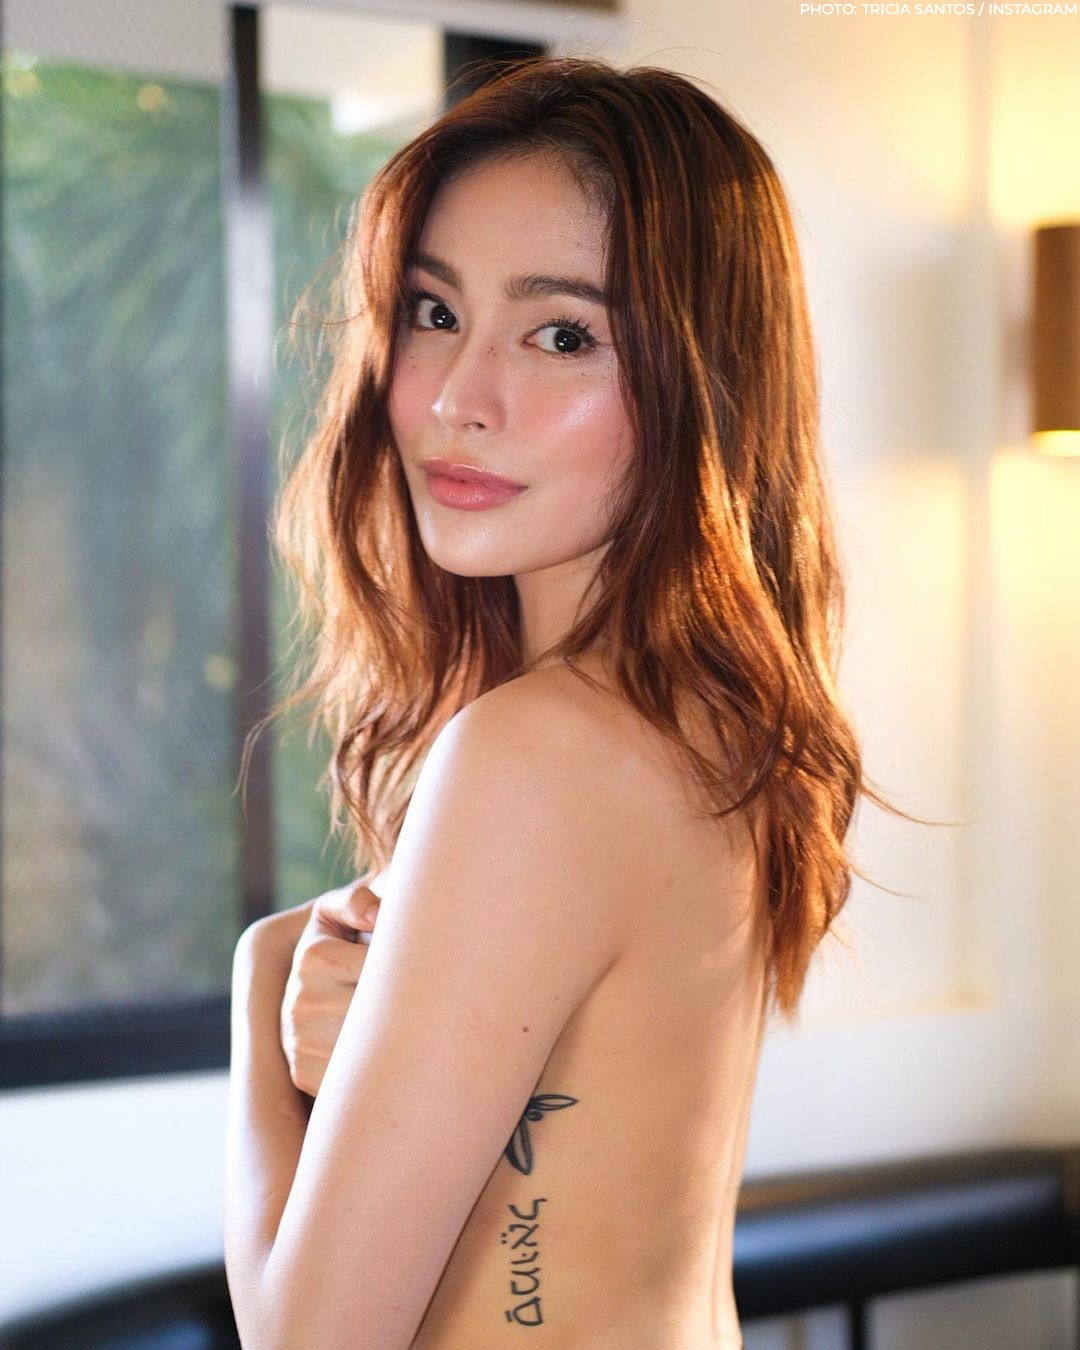 Tricia Santos' sexiest moments